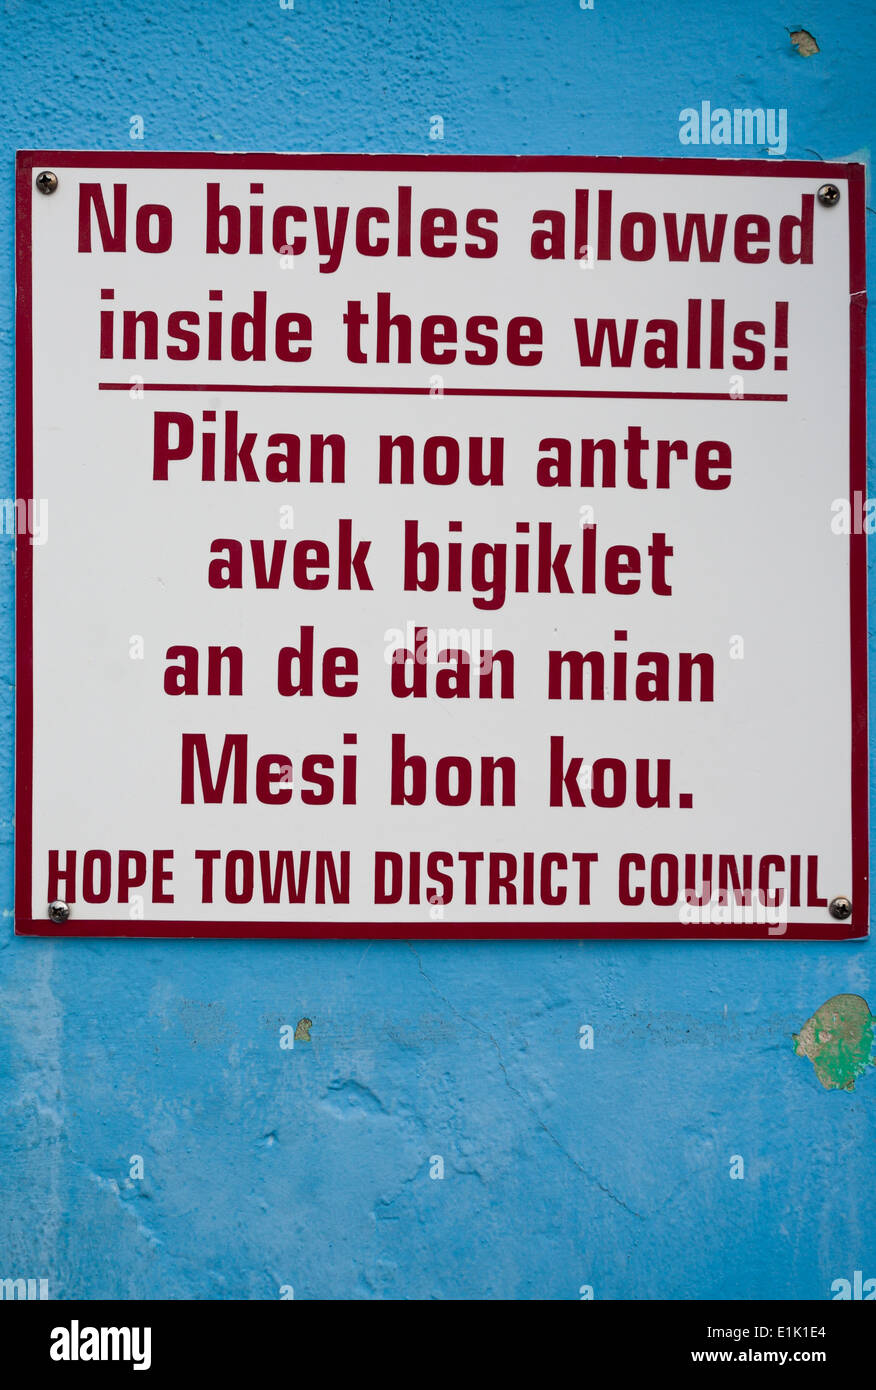 Bilingual Sign in English and Creole. No Bicycles Allowed inside these walls: a Bahamian sign in english and creole - Stock Image